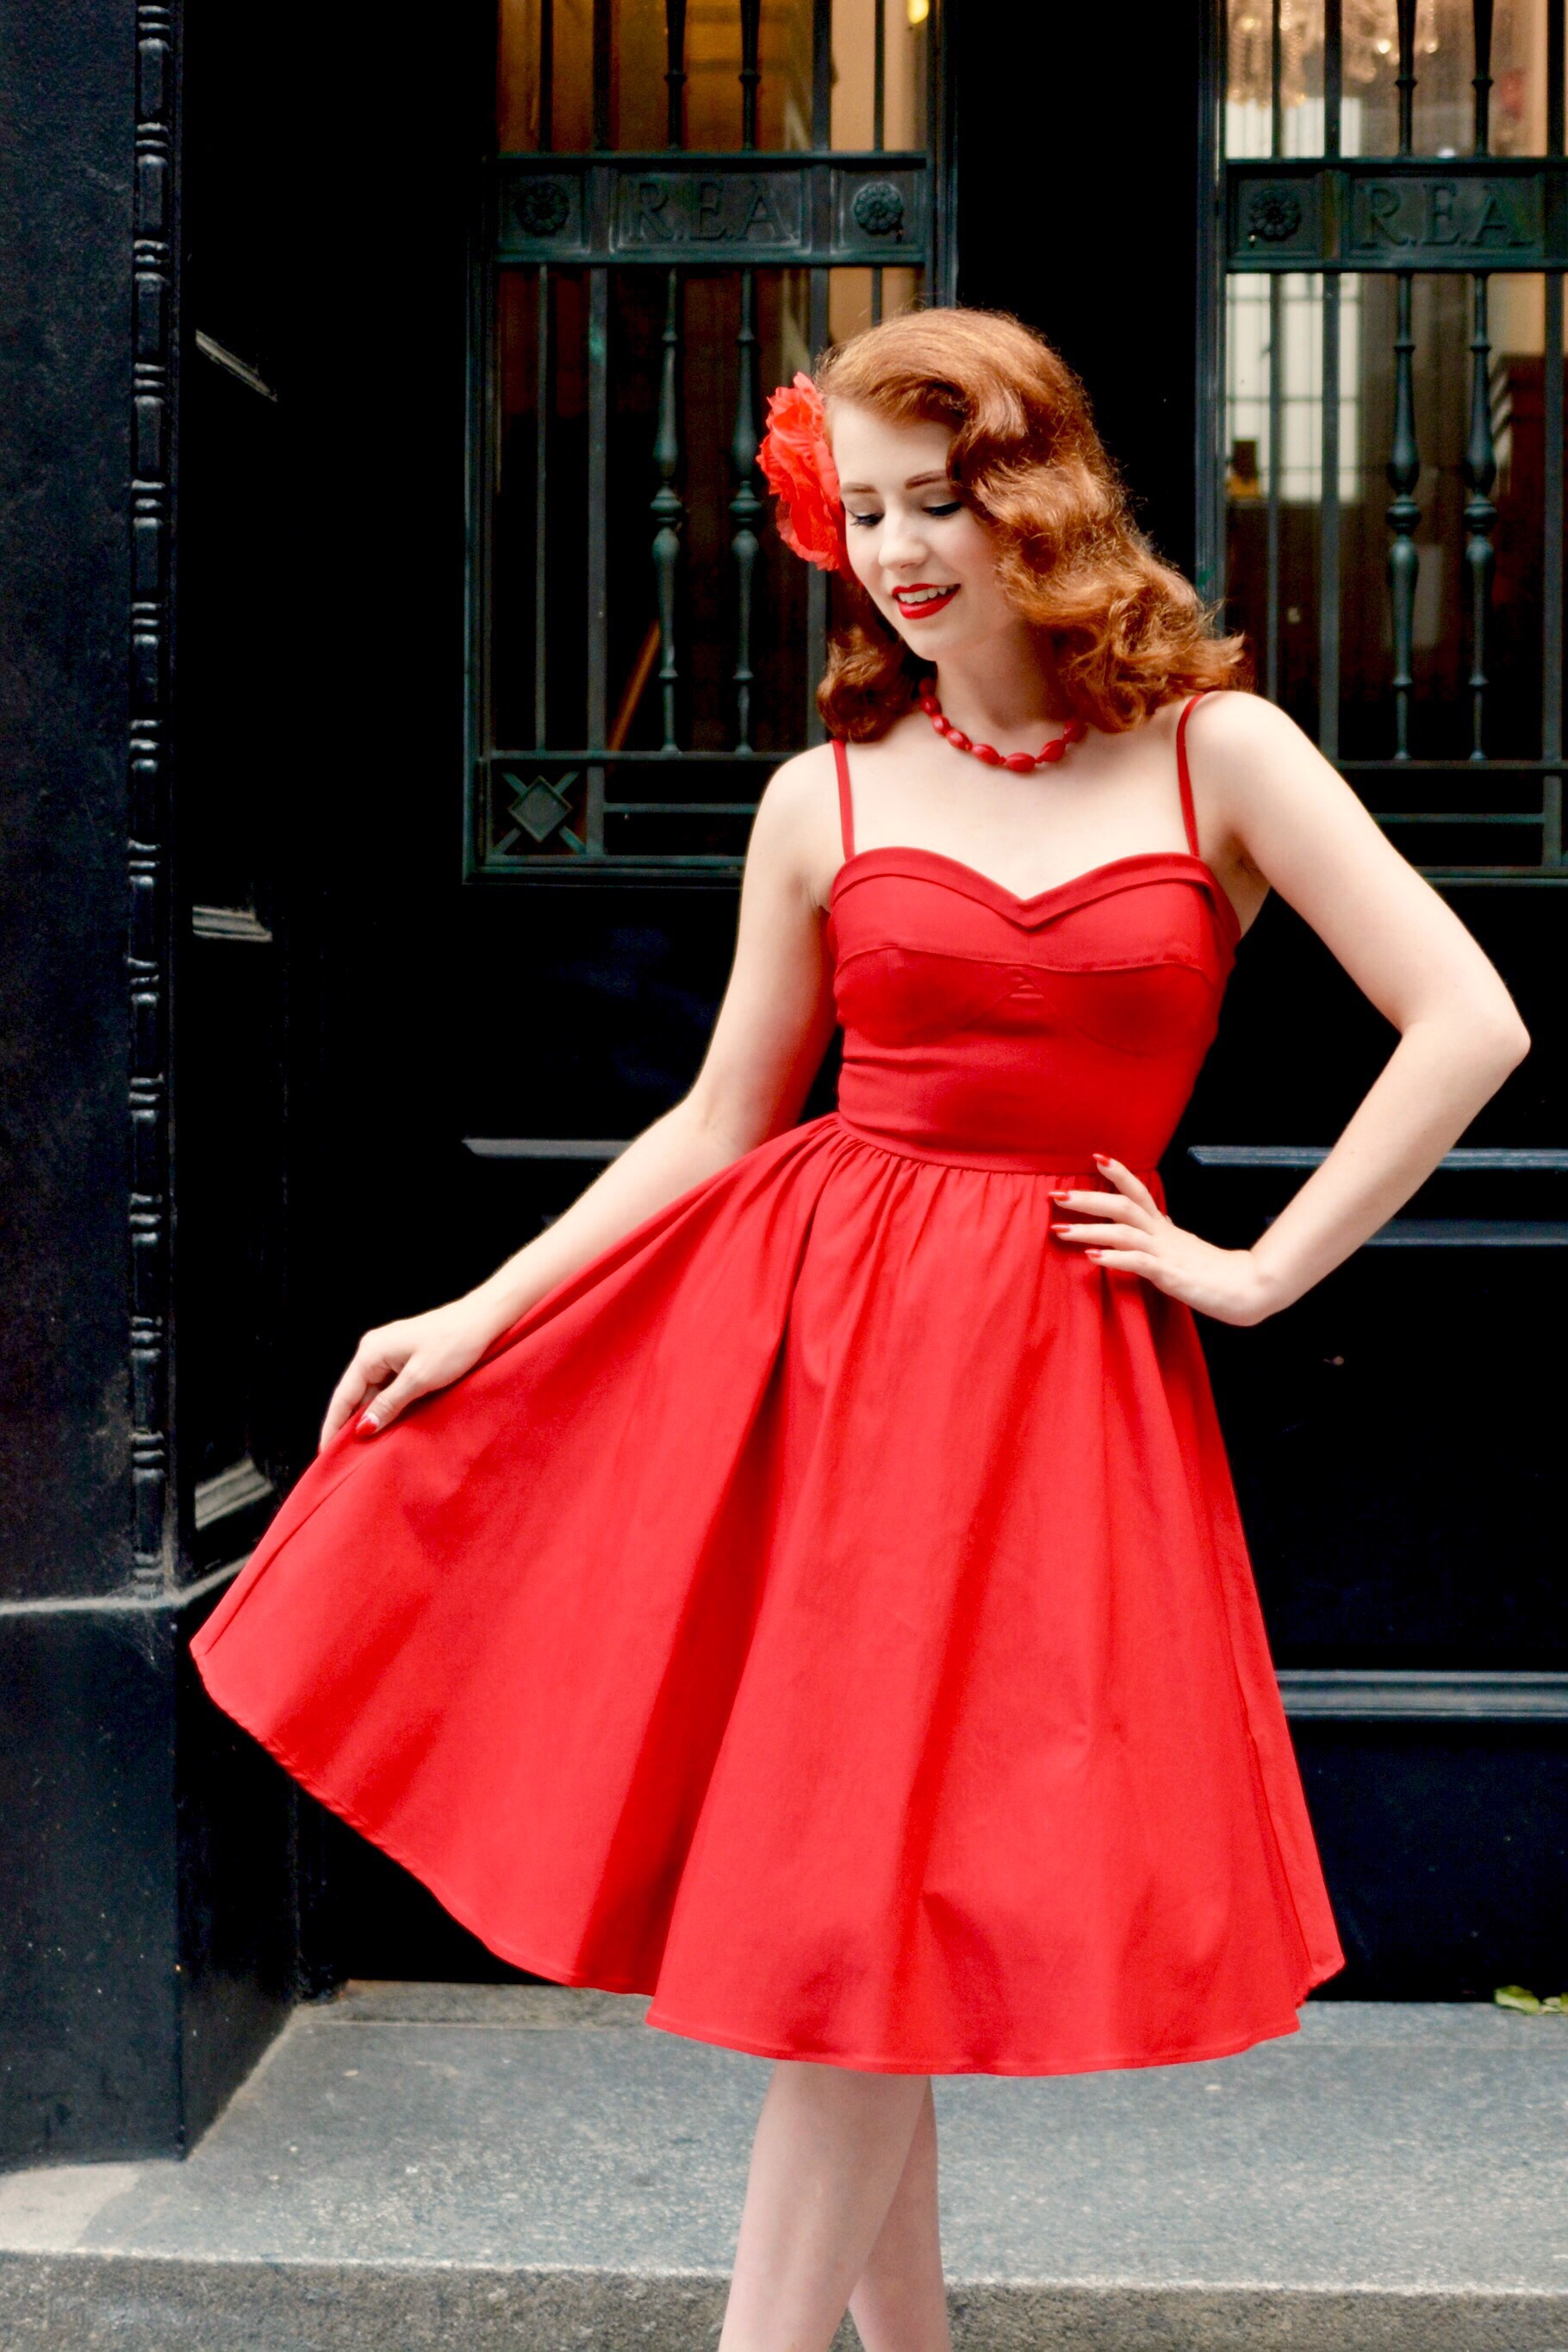 a72b291426dc Summertime Swing dress│Stop Staring! – Miss Hero Holliday